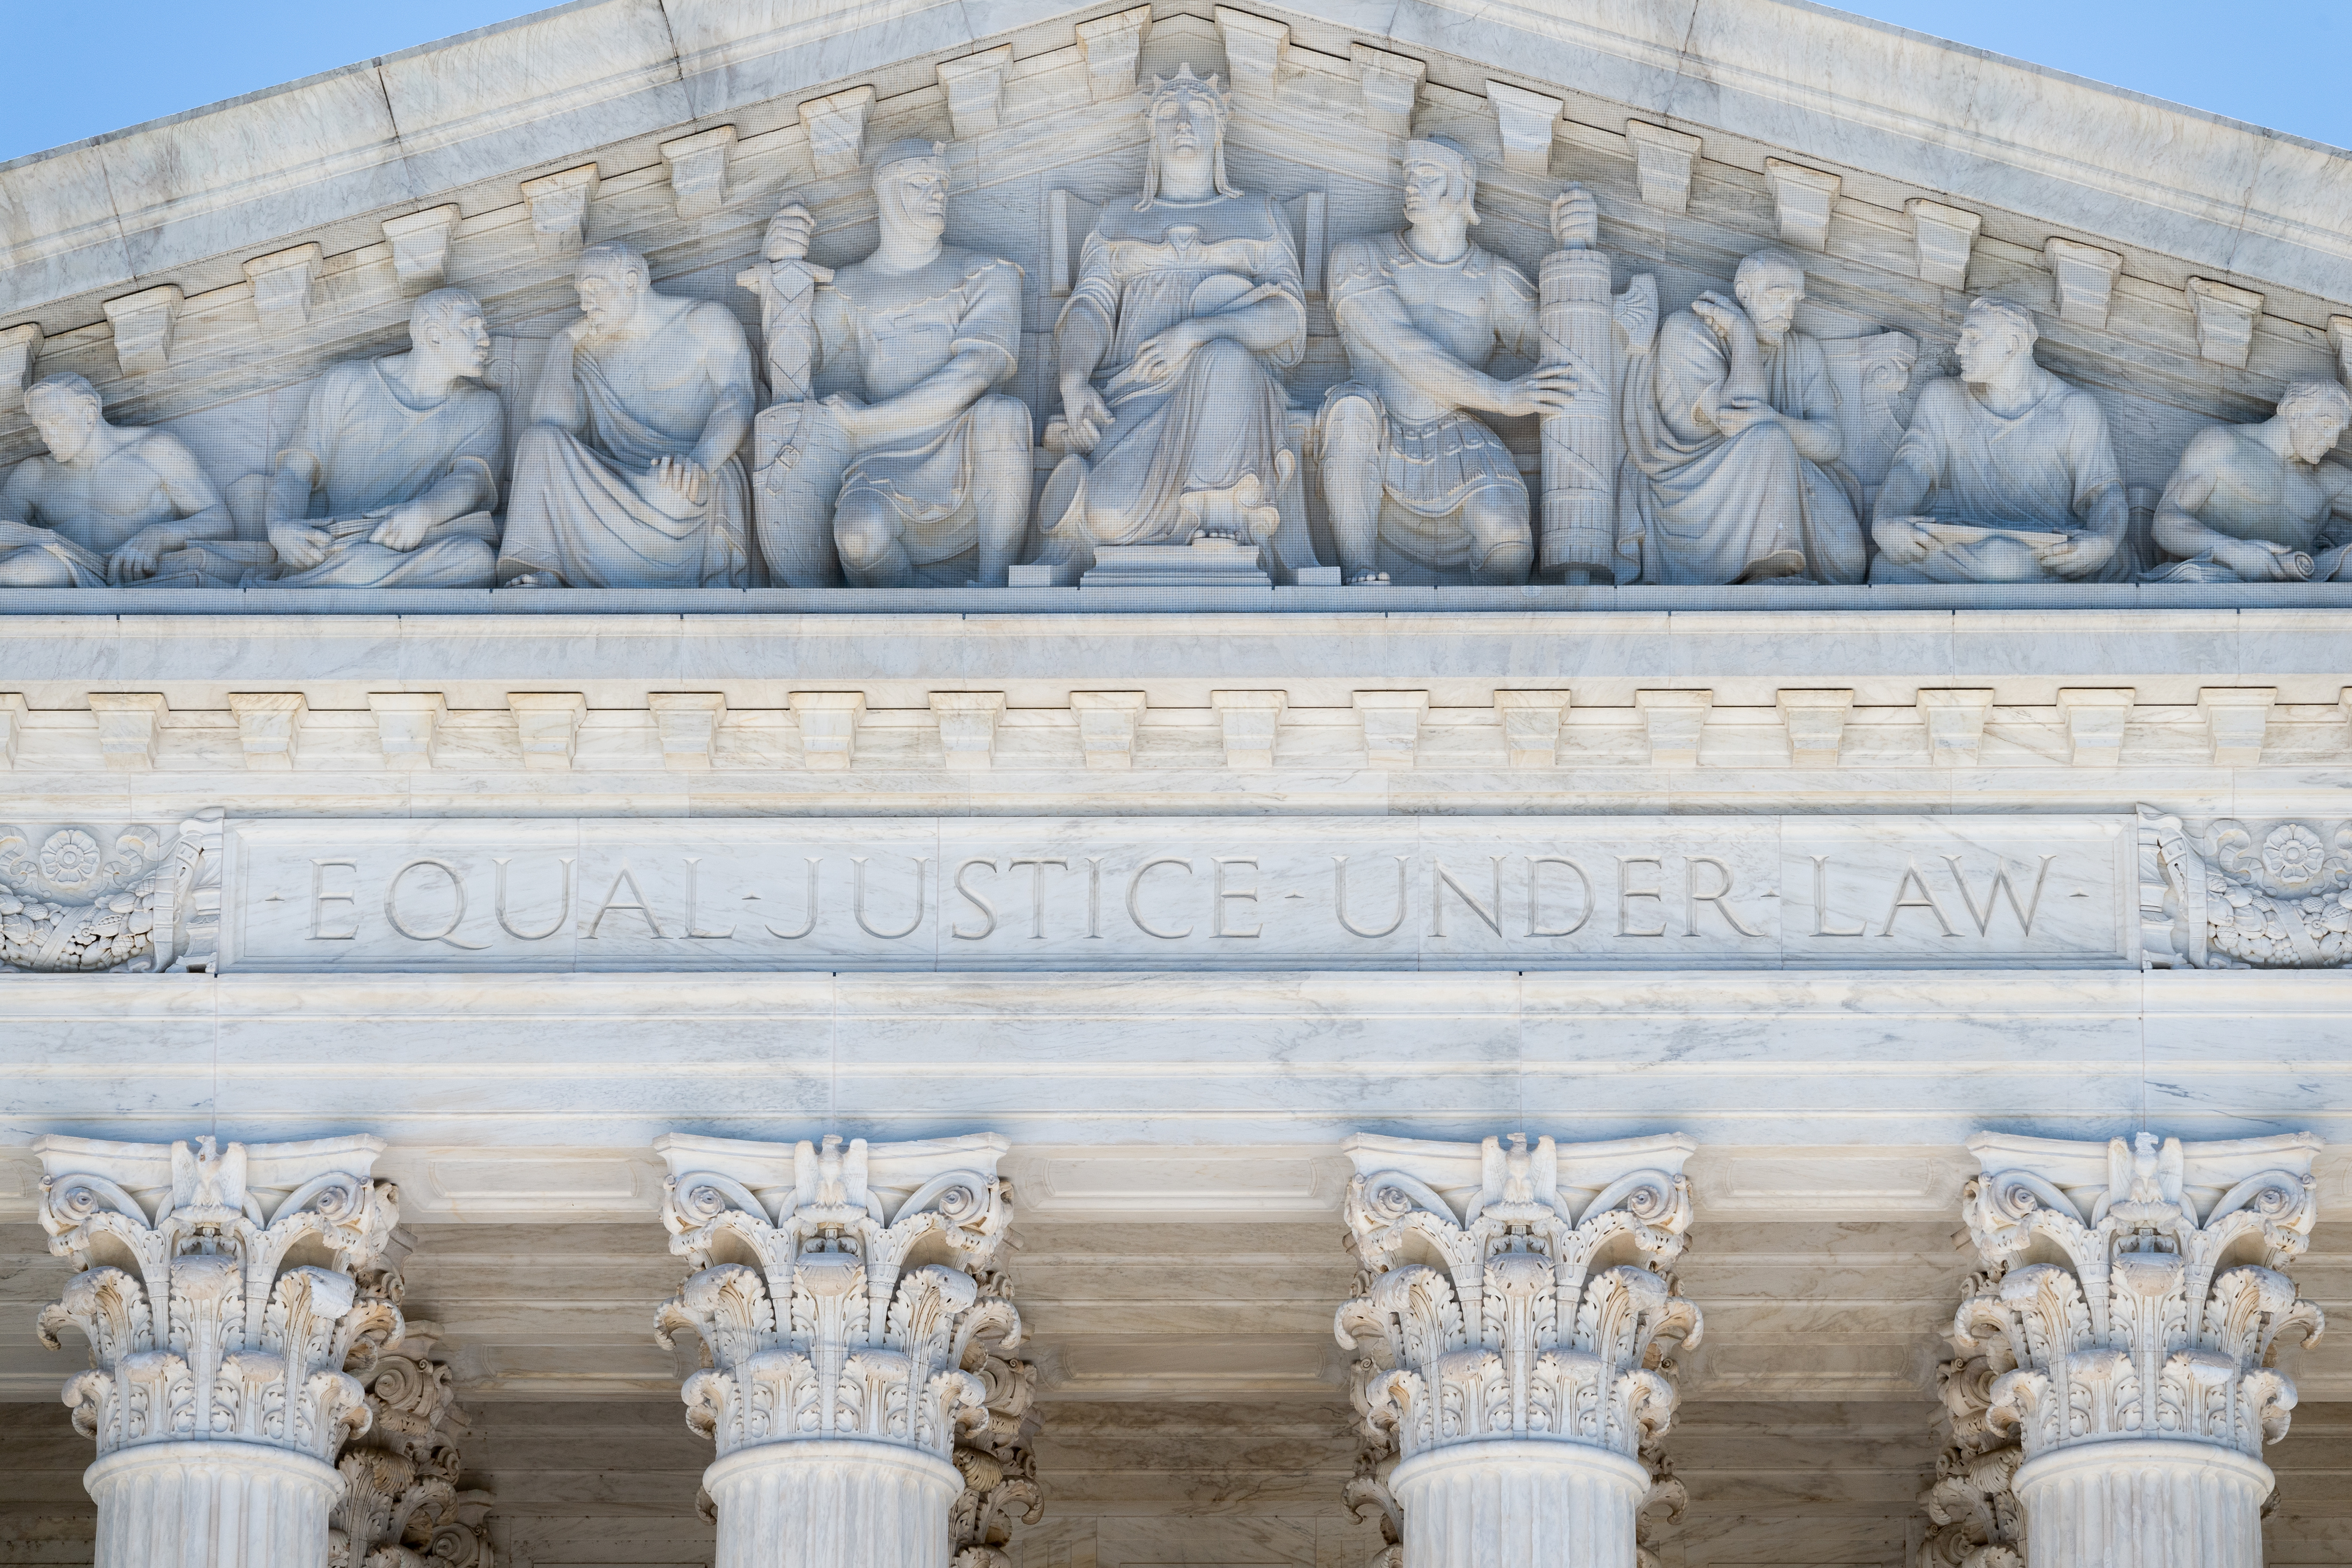 WASHINGTON, DC, UNITED STATES - 2018/08/23: The Supreme Court building in Washington, DC. (Photo by Michael Brochstein/SOPA Images/LightRocket via Getty Images)